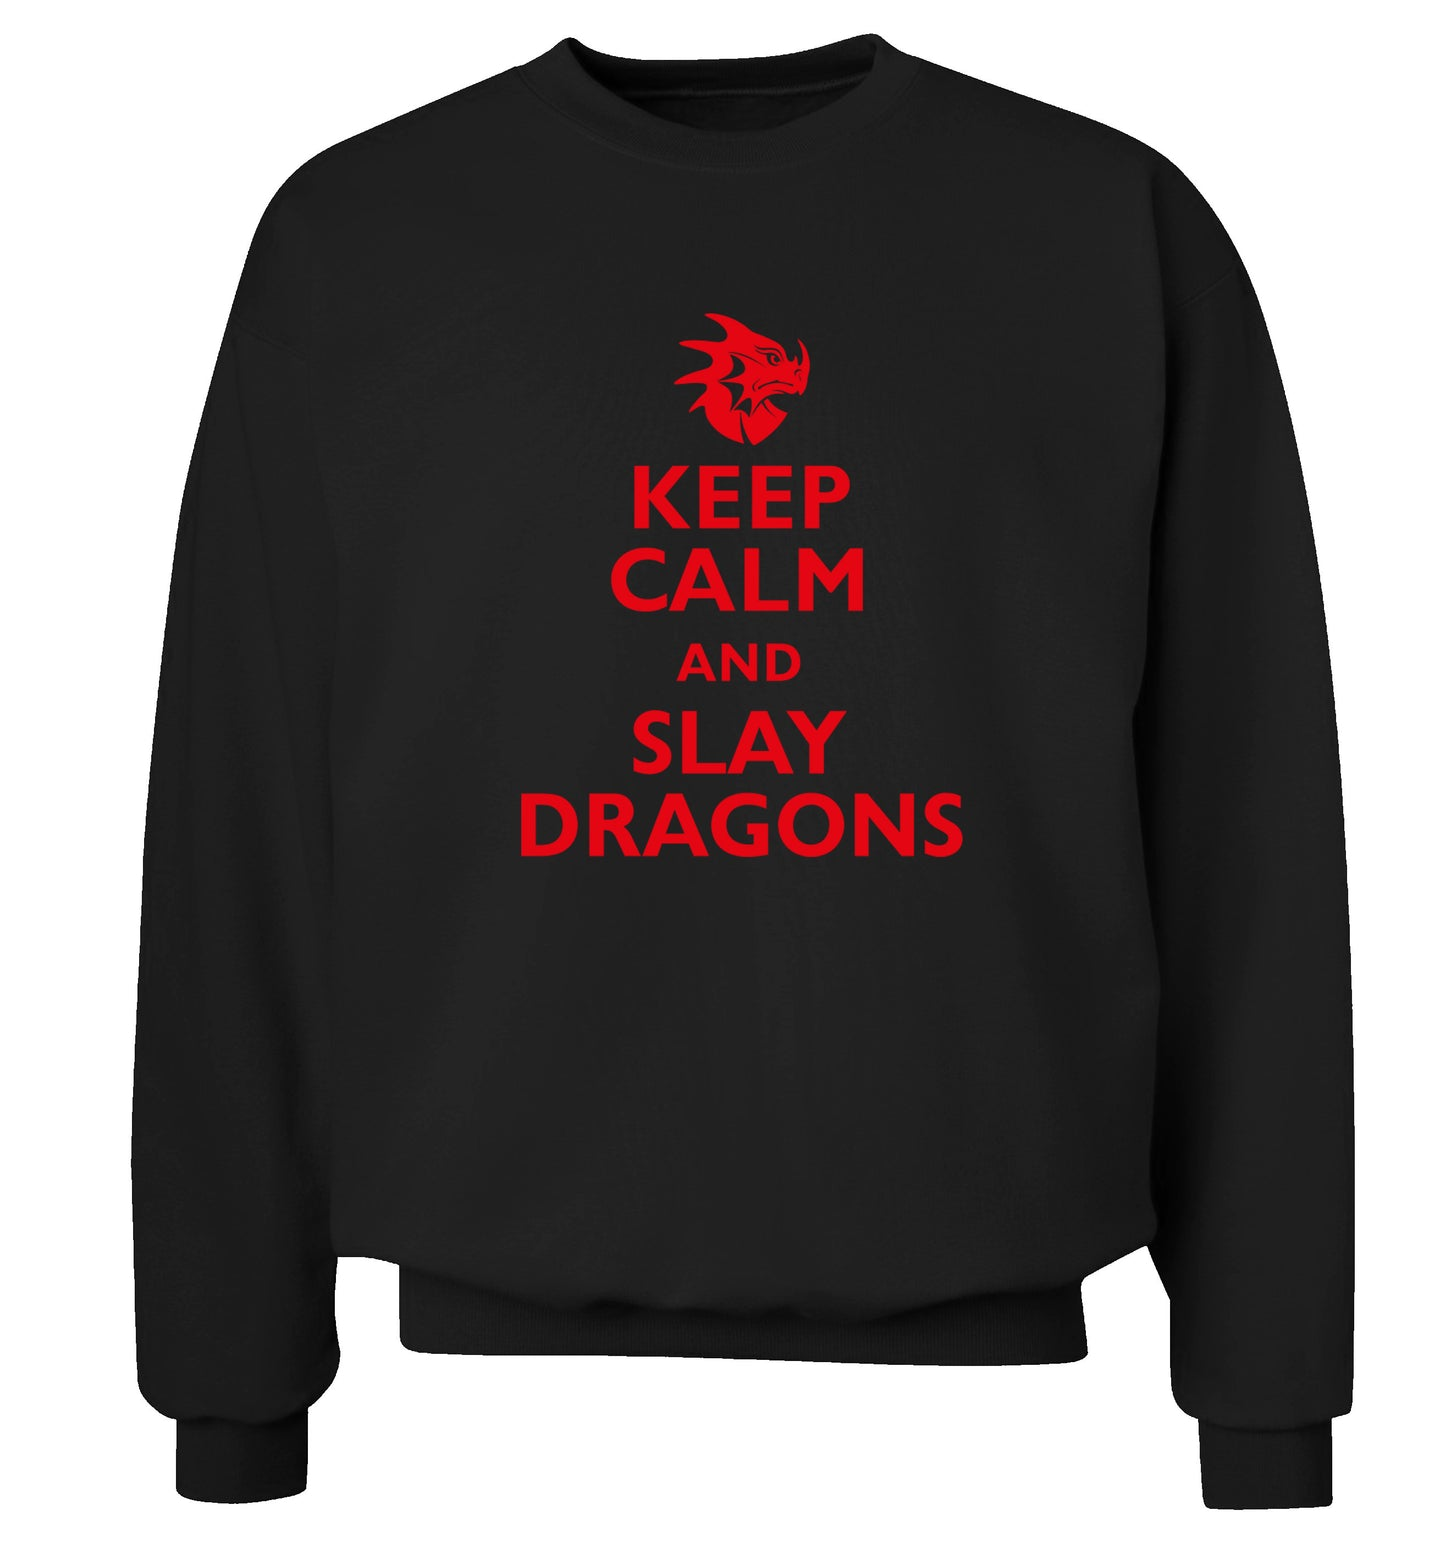 Keep calm and slay dragons Adult's unisex black Sweater 2XL